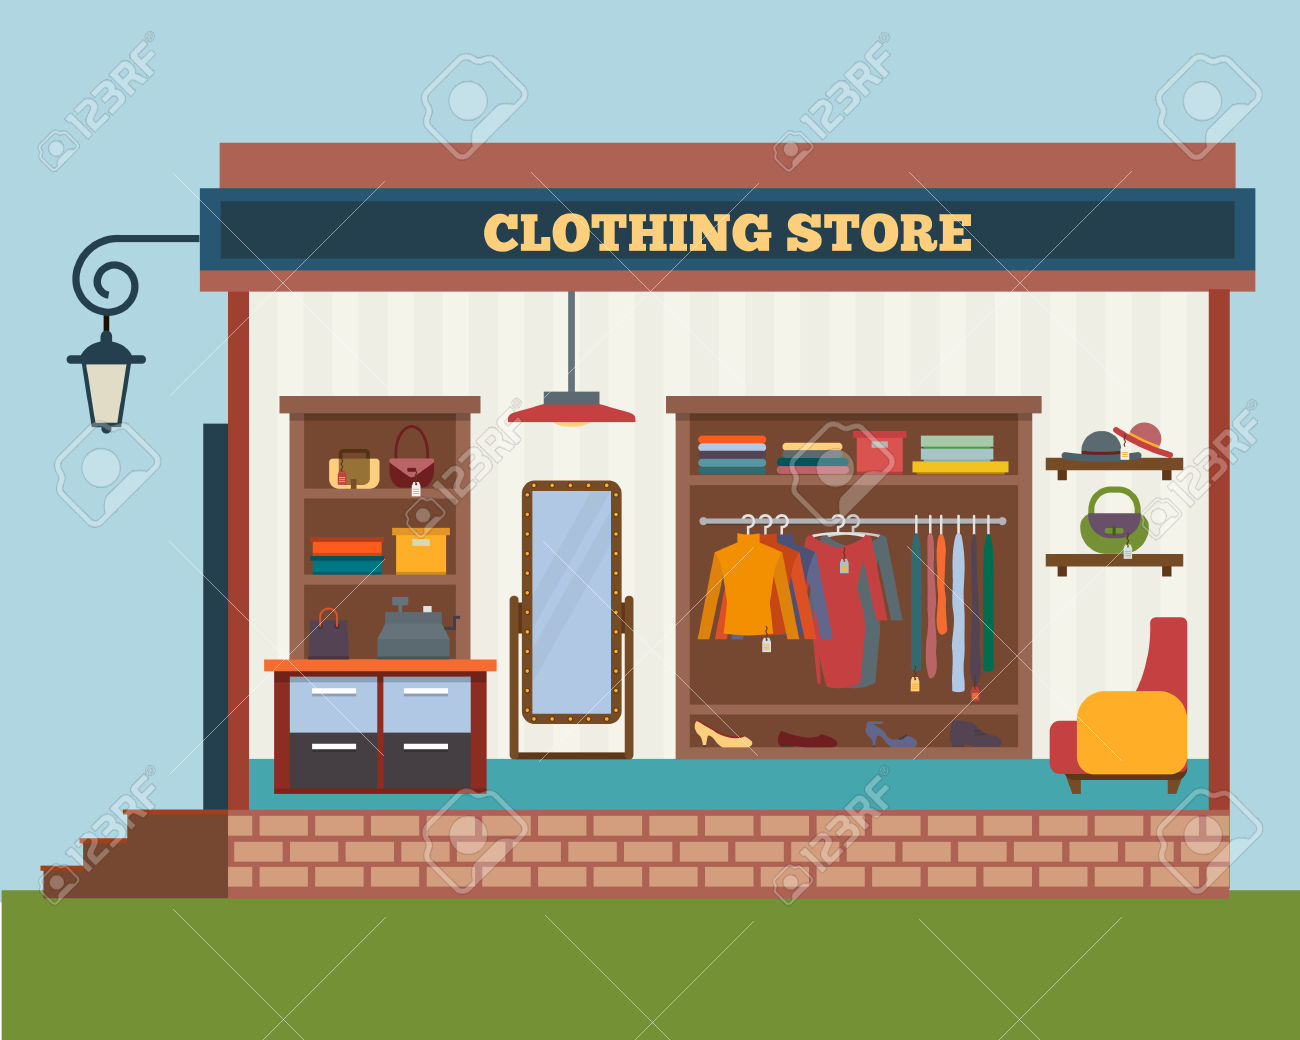 Shopping clip art library. Mall clipart clothing store building